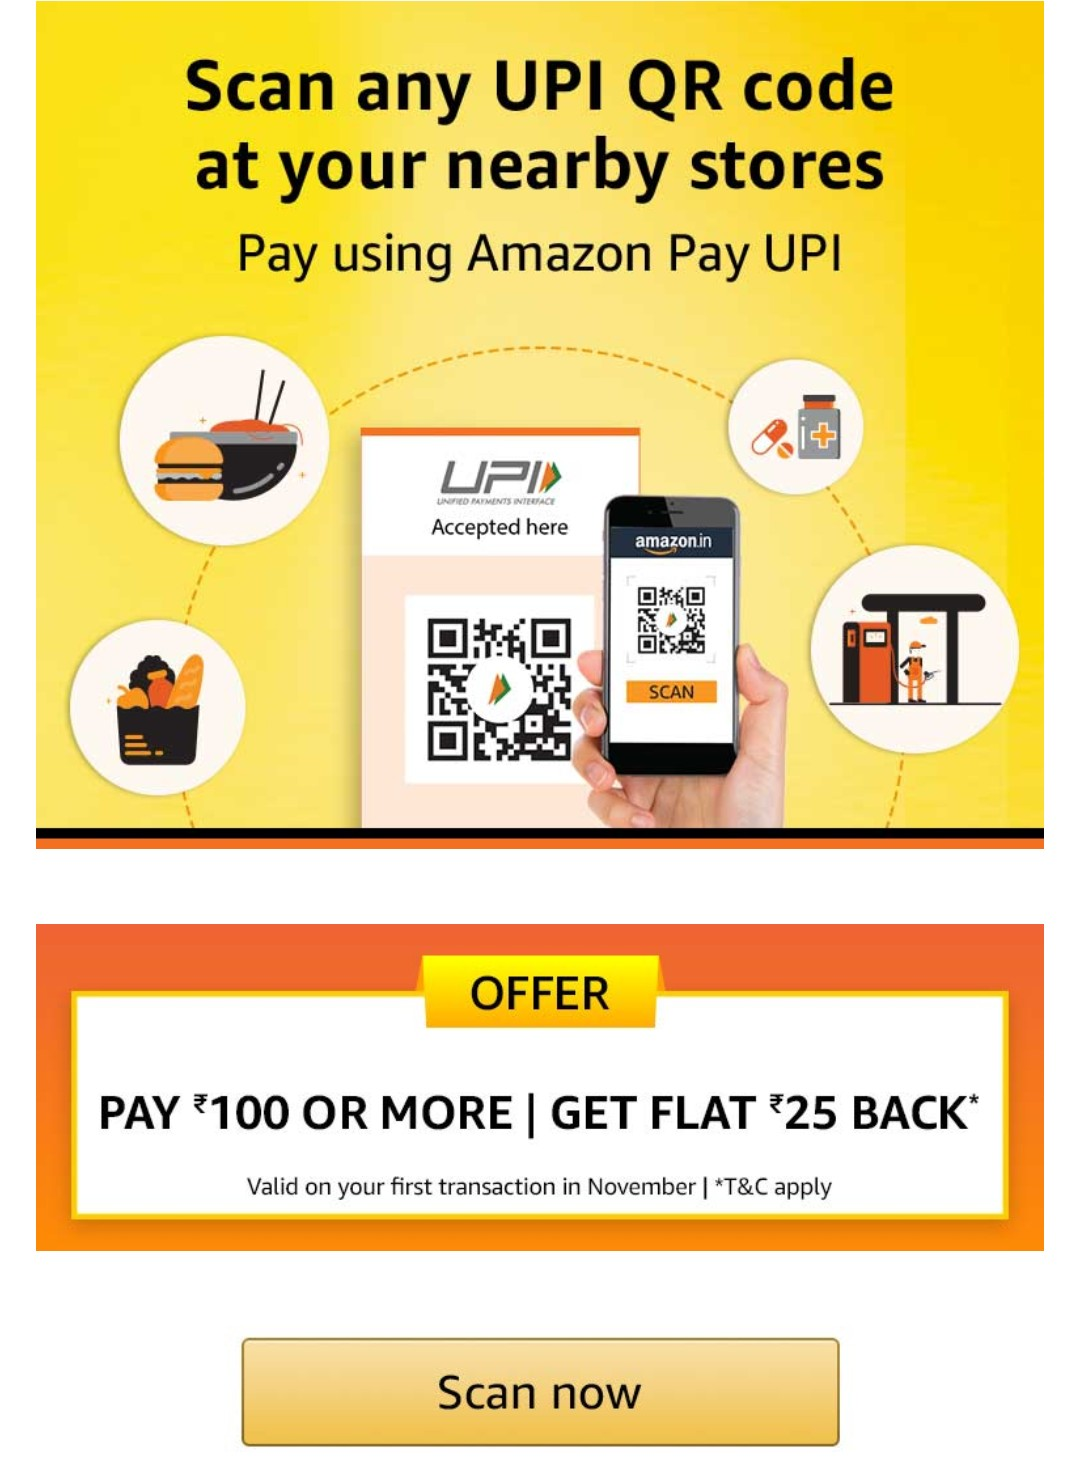 amazon pay offer,amazon pay cashback offer,amazon pay,amazon cashback offer,amazon pay add money offer,amazon pay new offer,amazon pay mobile recharge offer,amazon pay upi offer,amazon pay offers,recharge through amazon pay,amazon pay august new scan and pay offer,amazon pay balance offer,amazon pay offer add money,amazon pay offer today,amazon pay offer tamil